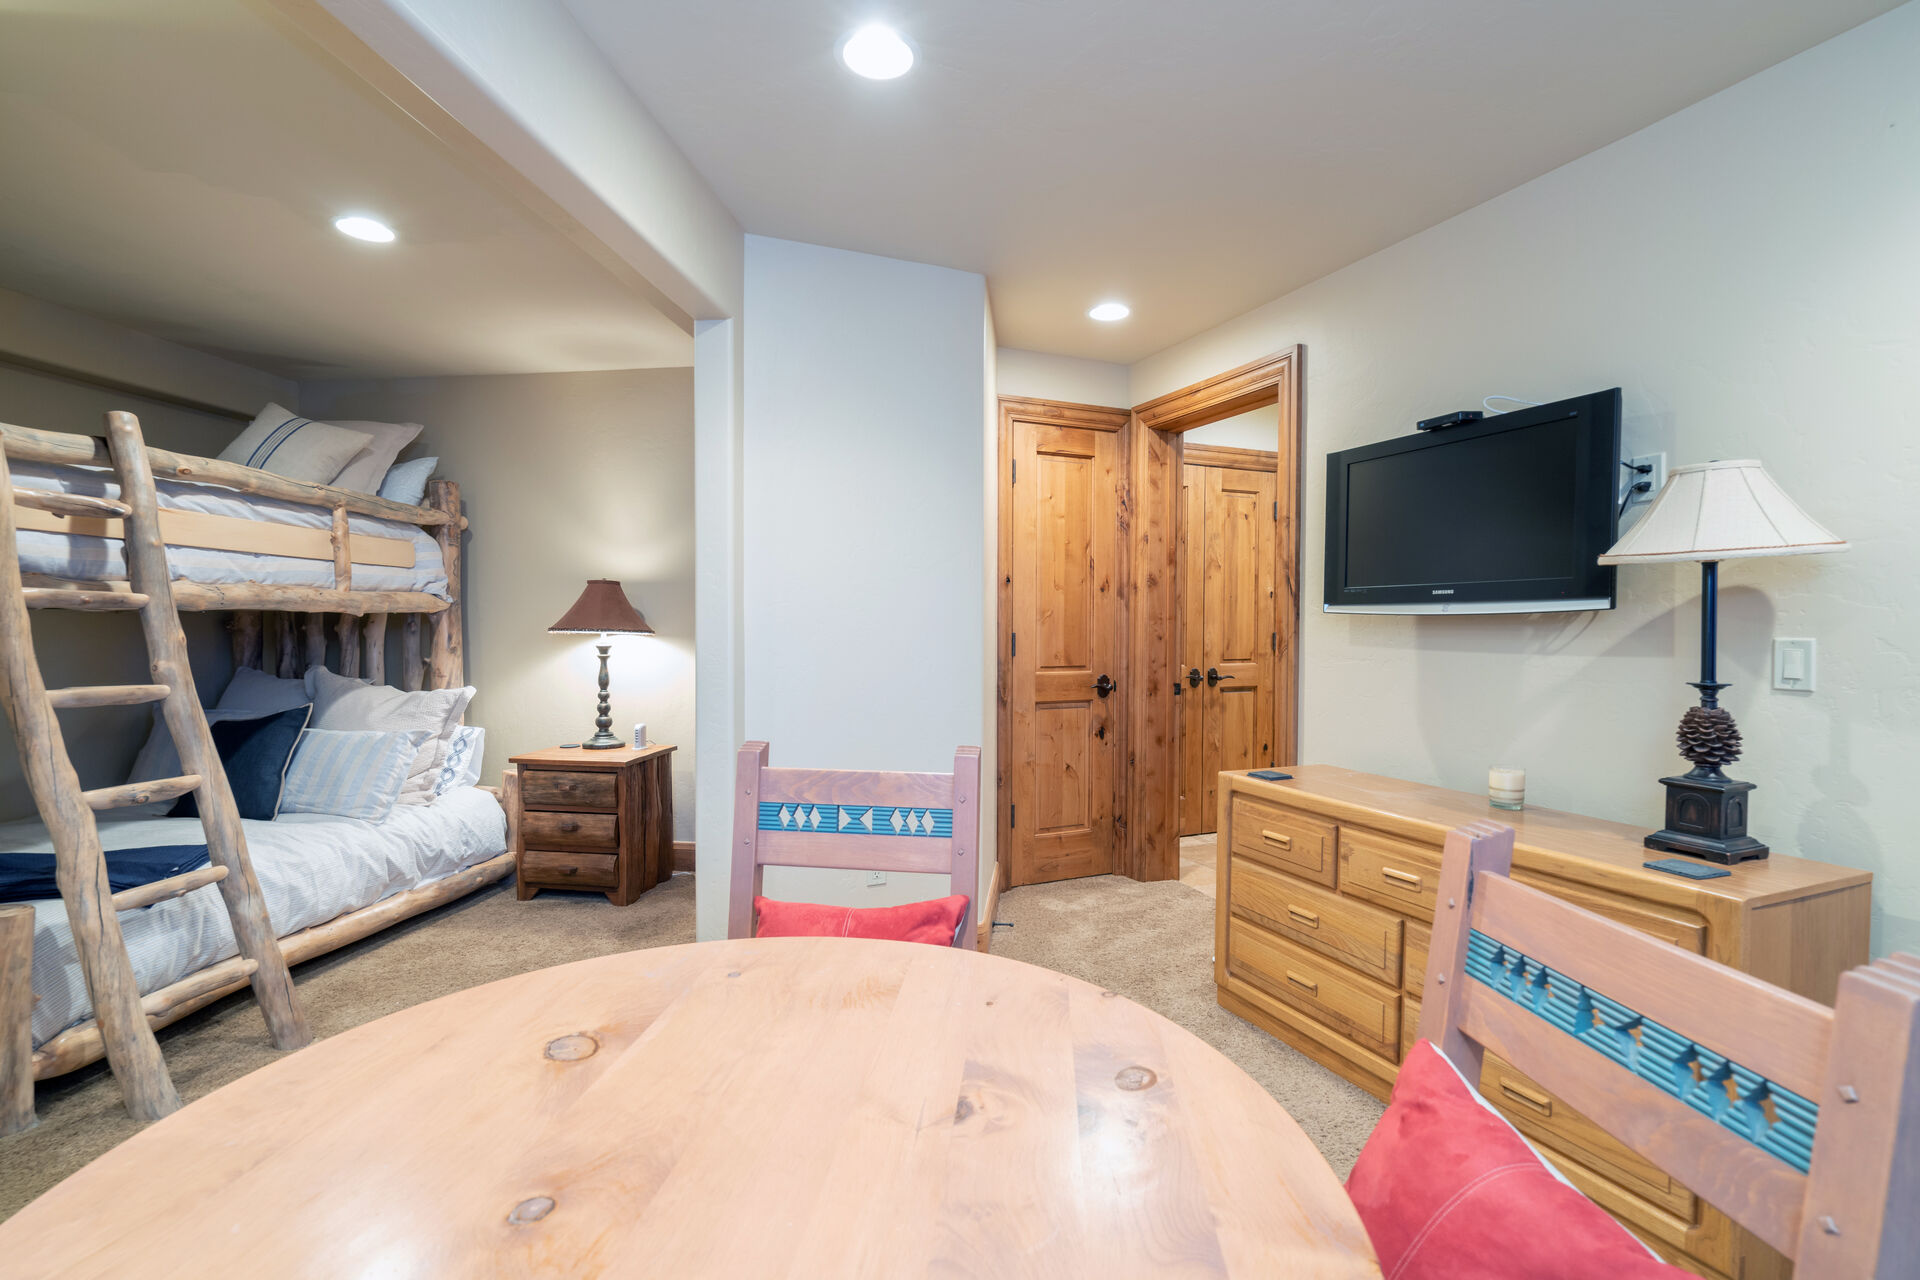 Large bedroom with table and seating, a bunk bed, and wall-mounted TV above a dresser.